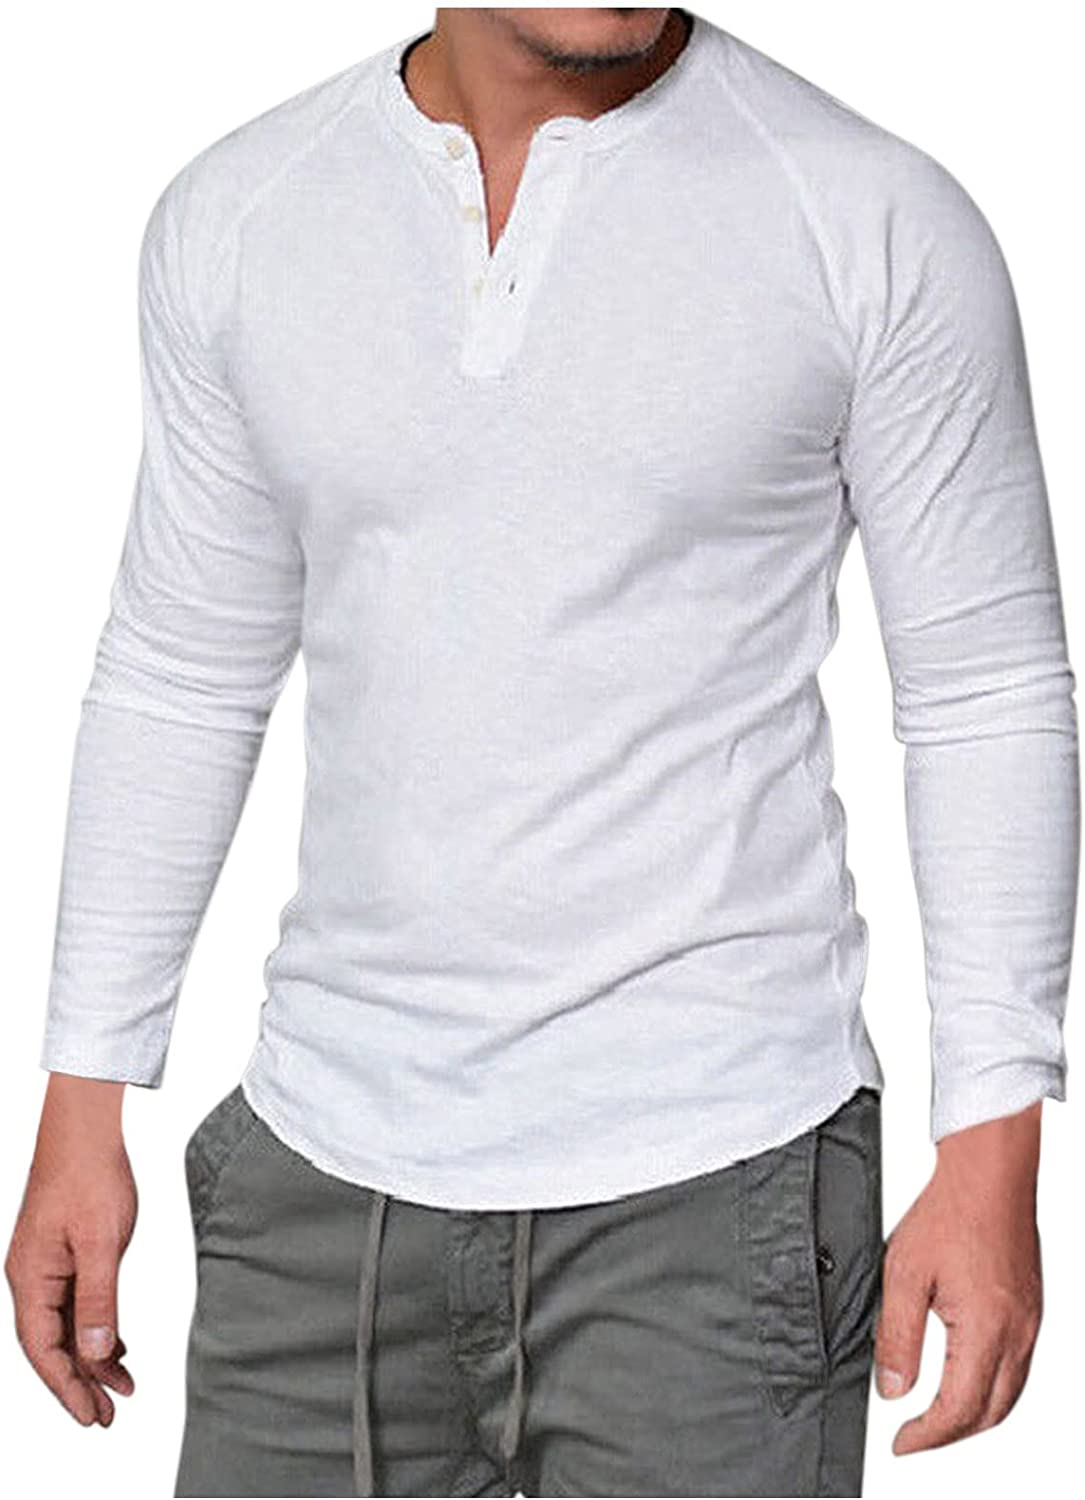 snOSUok Men's Henleys Solid Color T Shirts Long Sleeve Shirts Tees Button Down Tops Sports & Outdoors Blouse Clothing